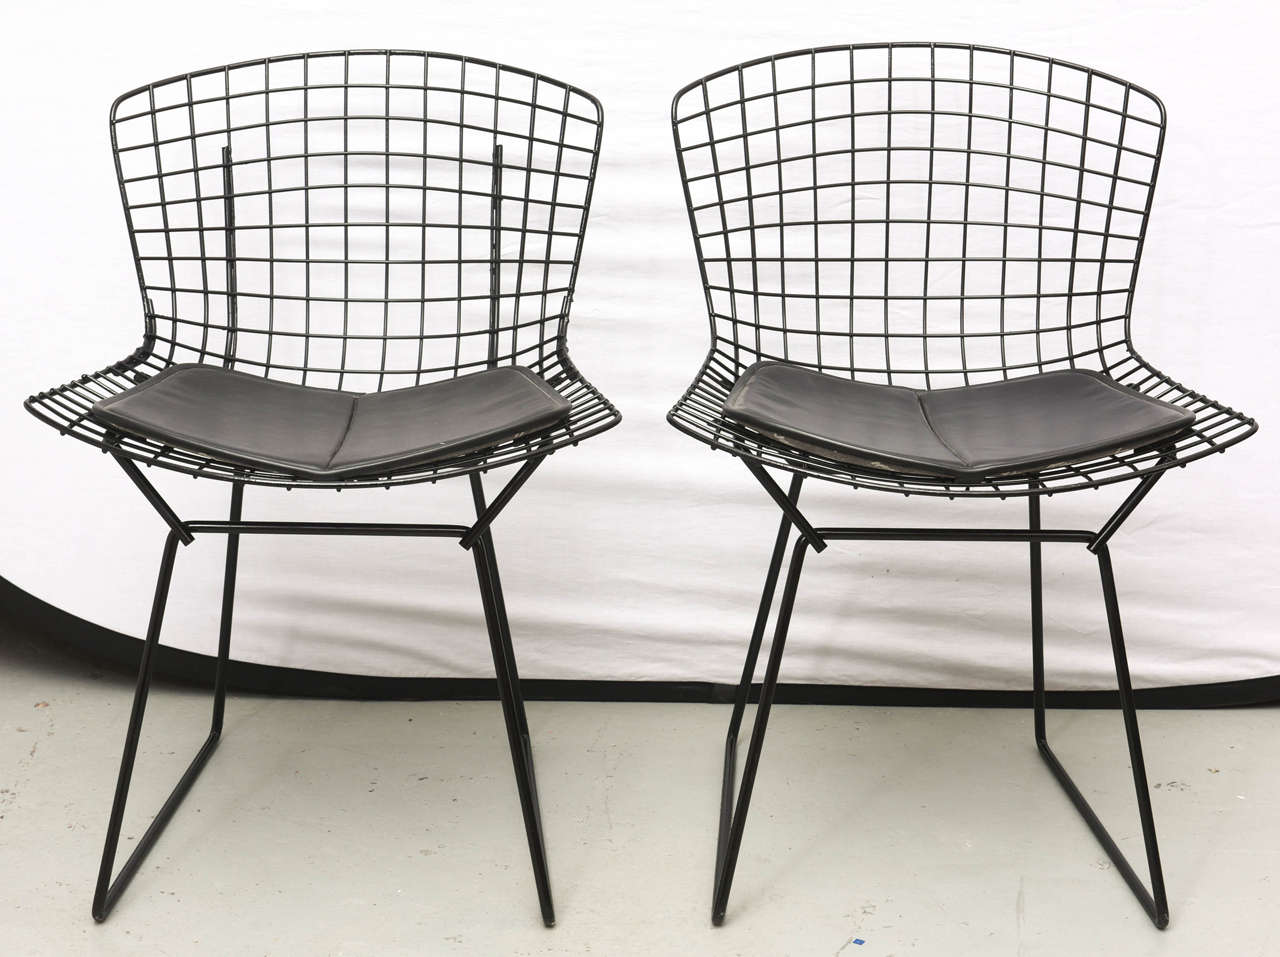 Bertoia Wire Chairs with Black Leather Knoll Cushions, 1960s, USA 2